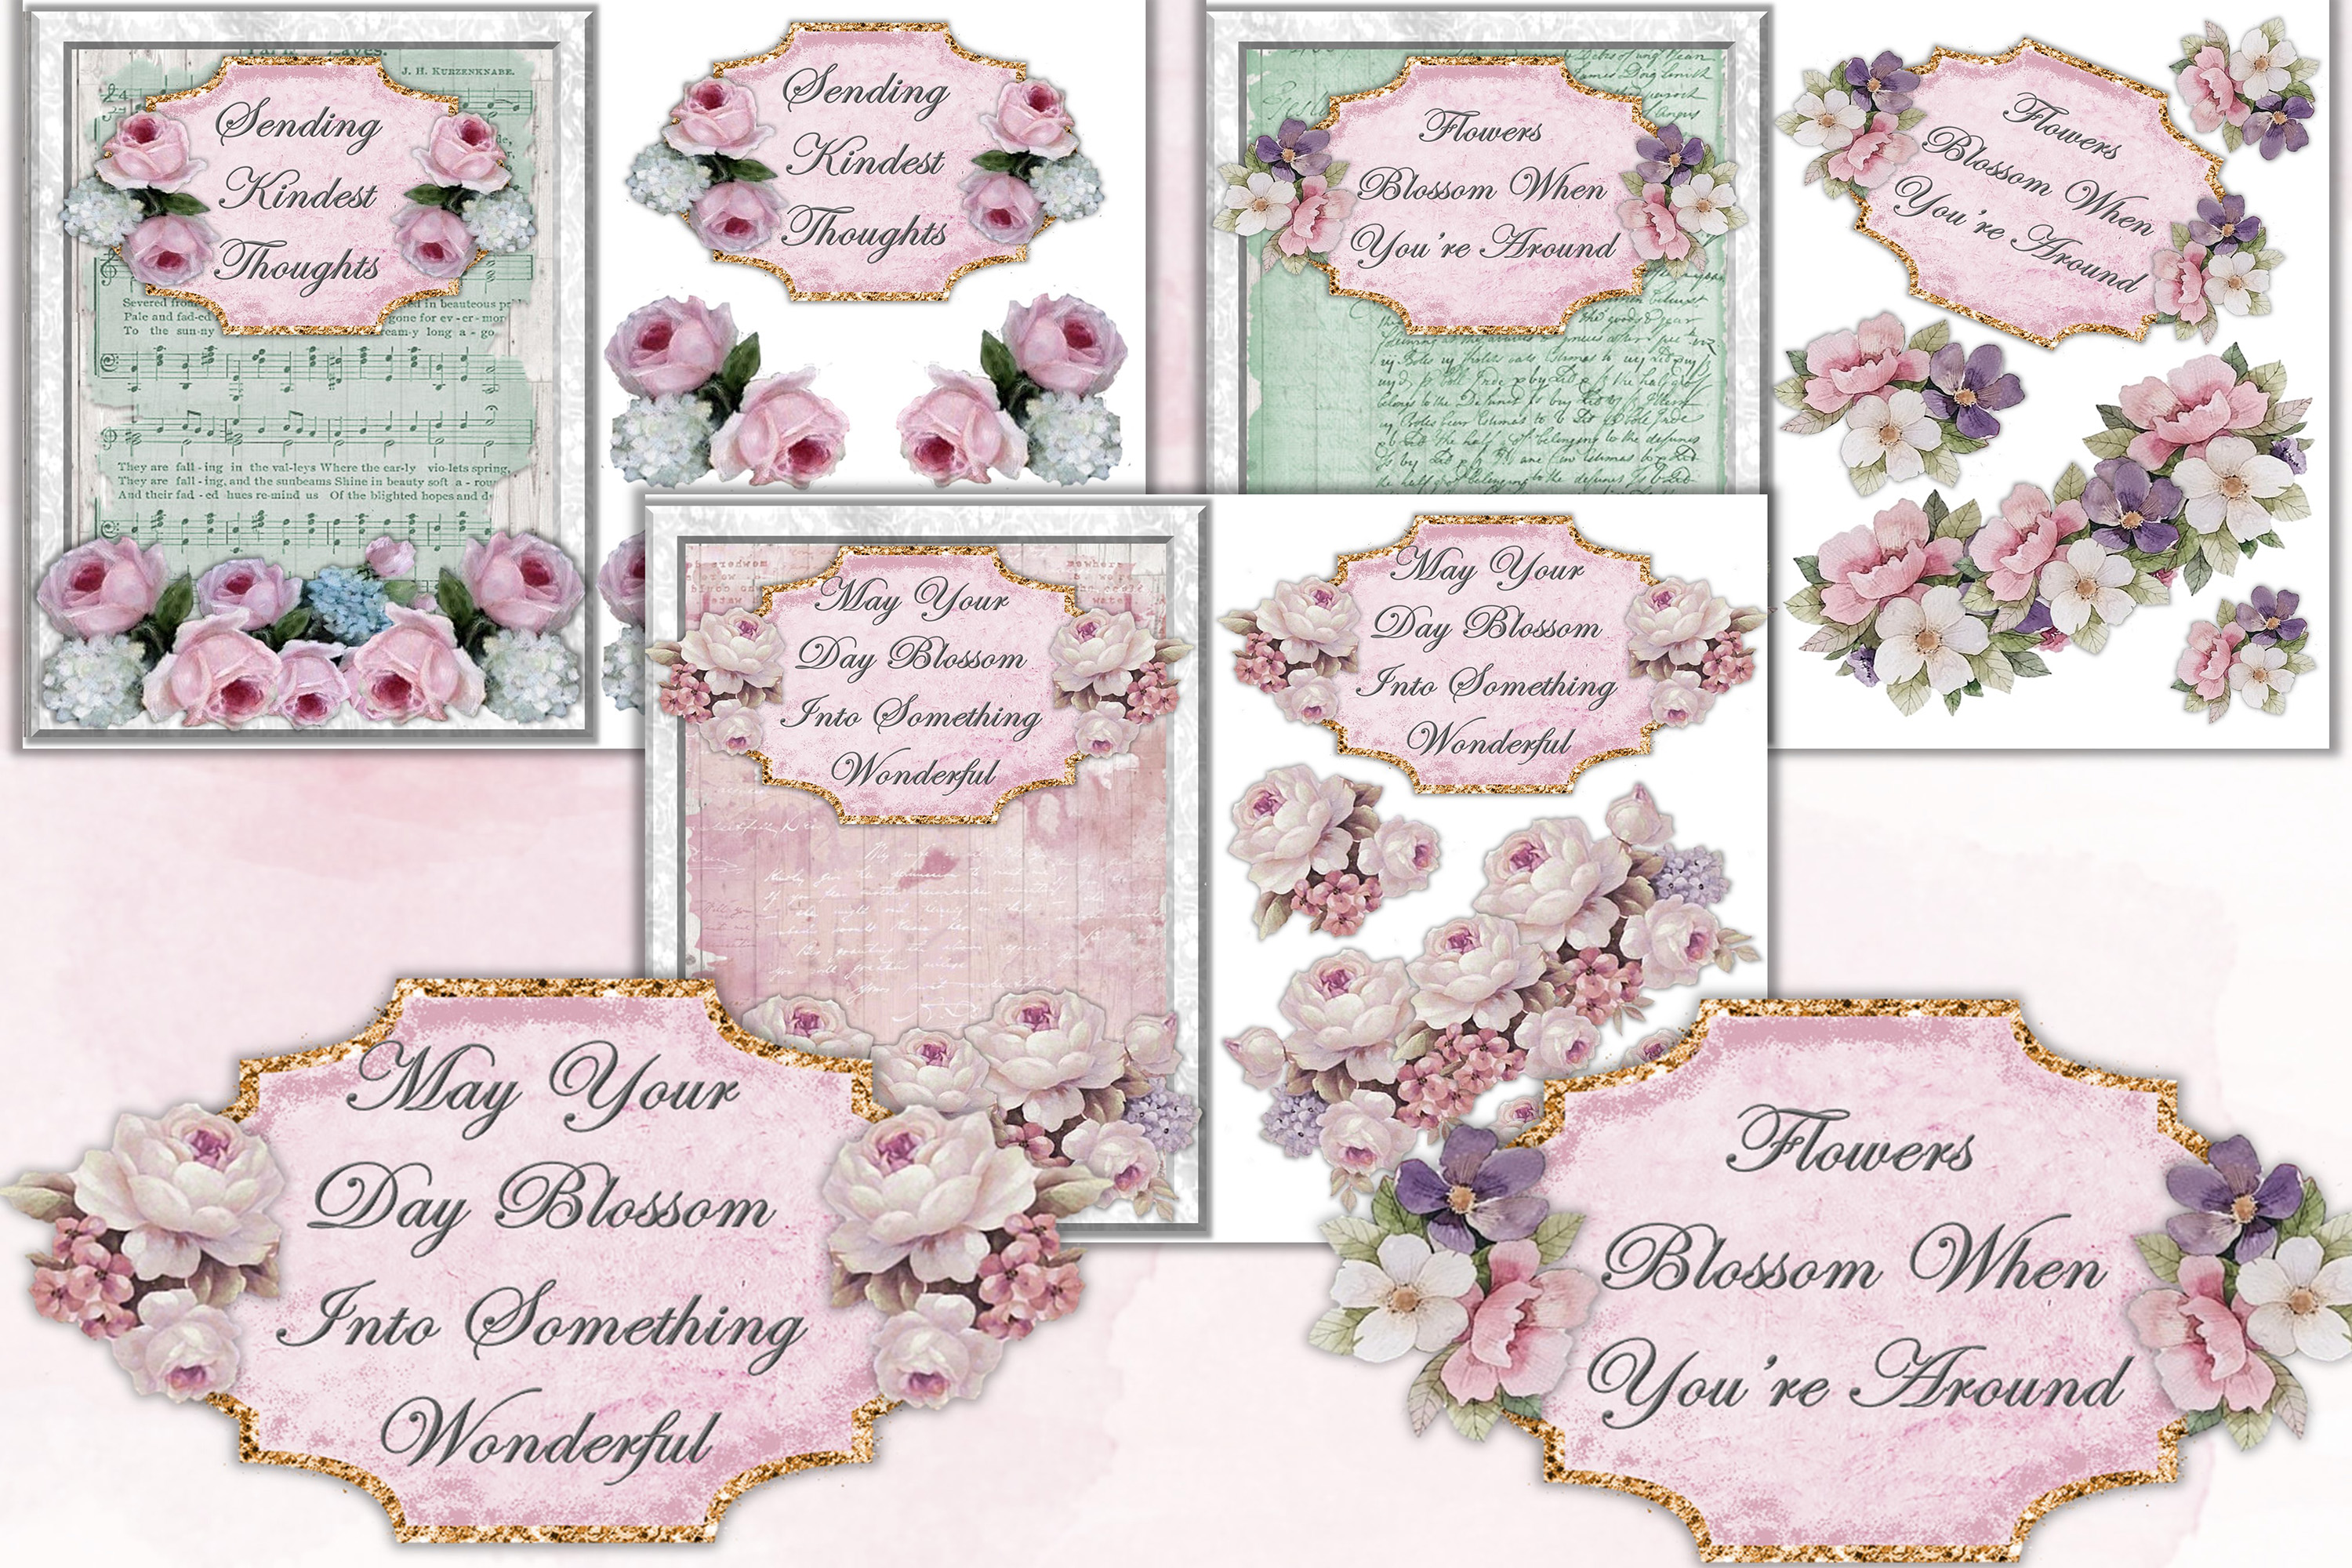 Mega Scrapbooking Kit with free backgrounds example image 10